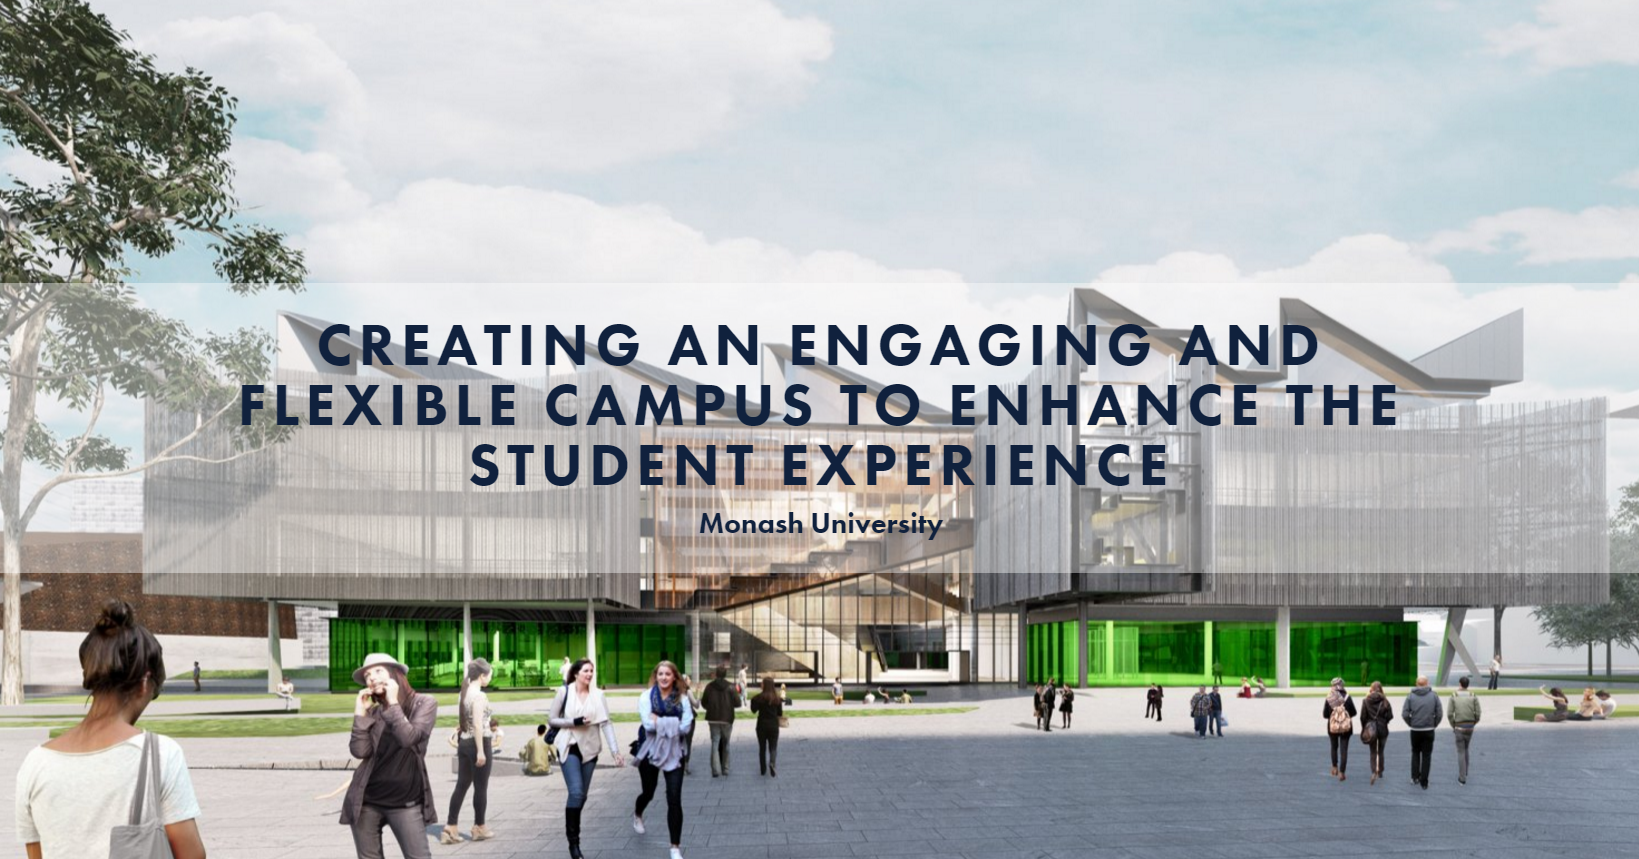 Creating an Engaging and Flexible Campus to Enhance the Student Experience